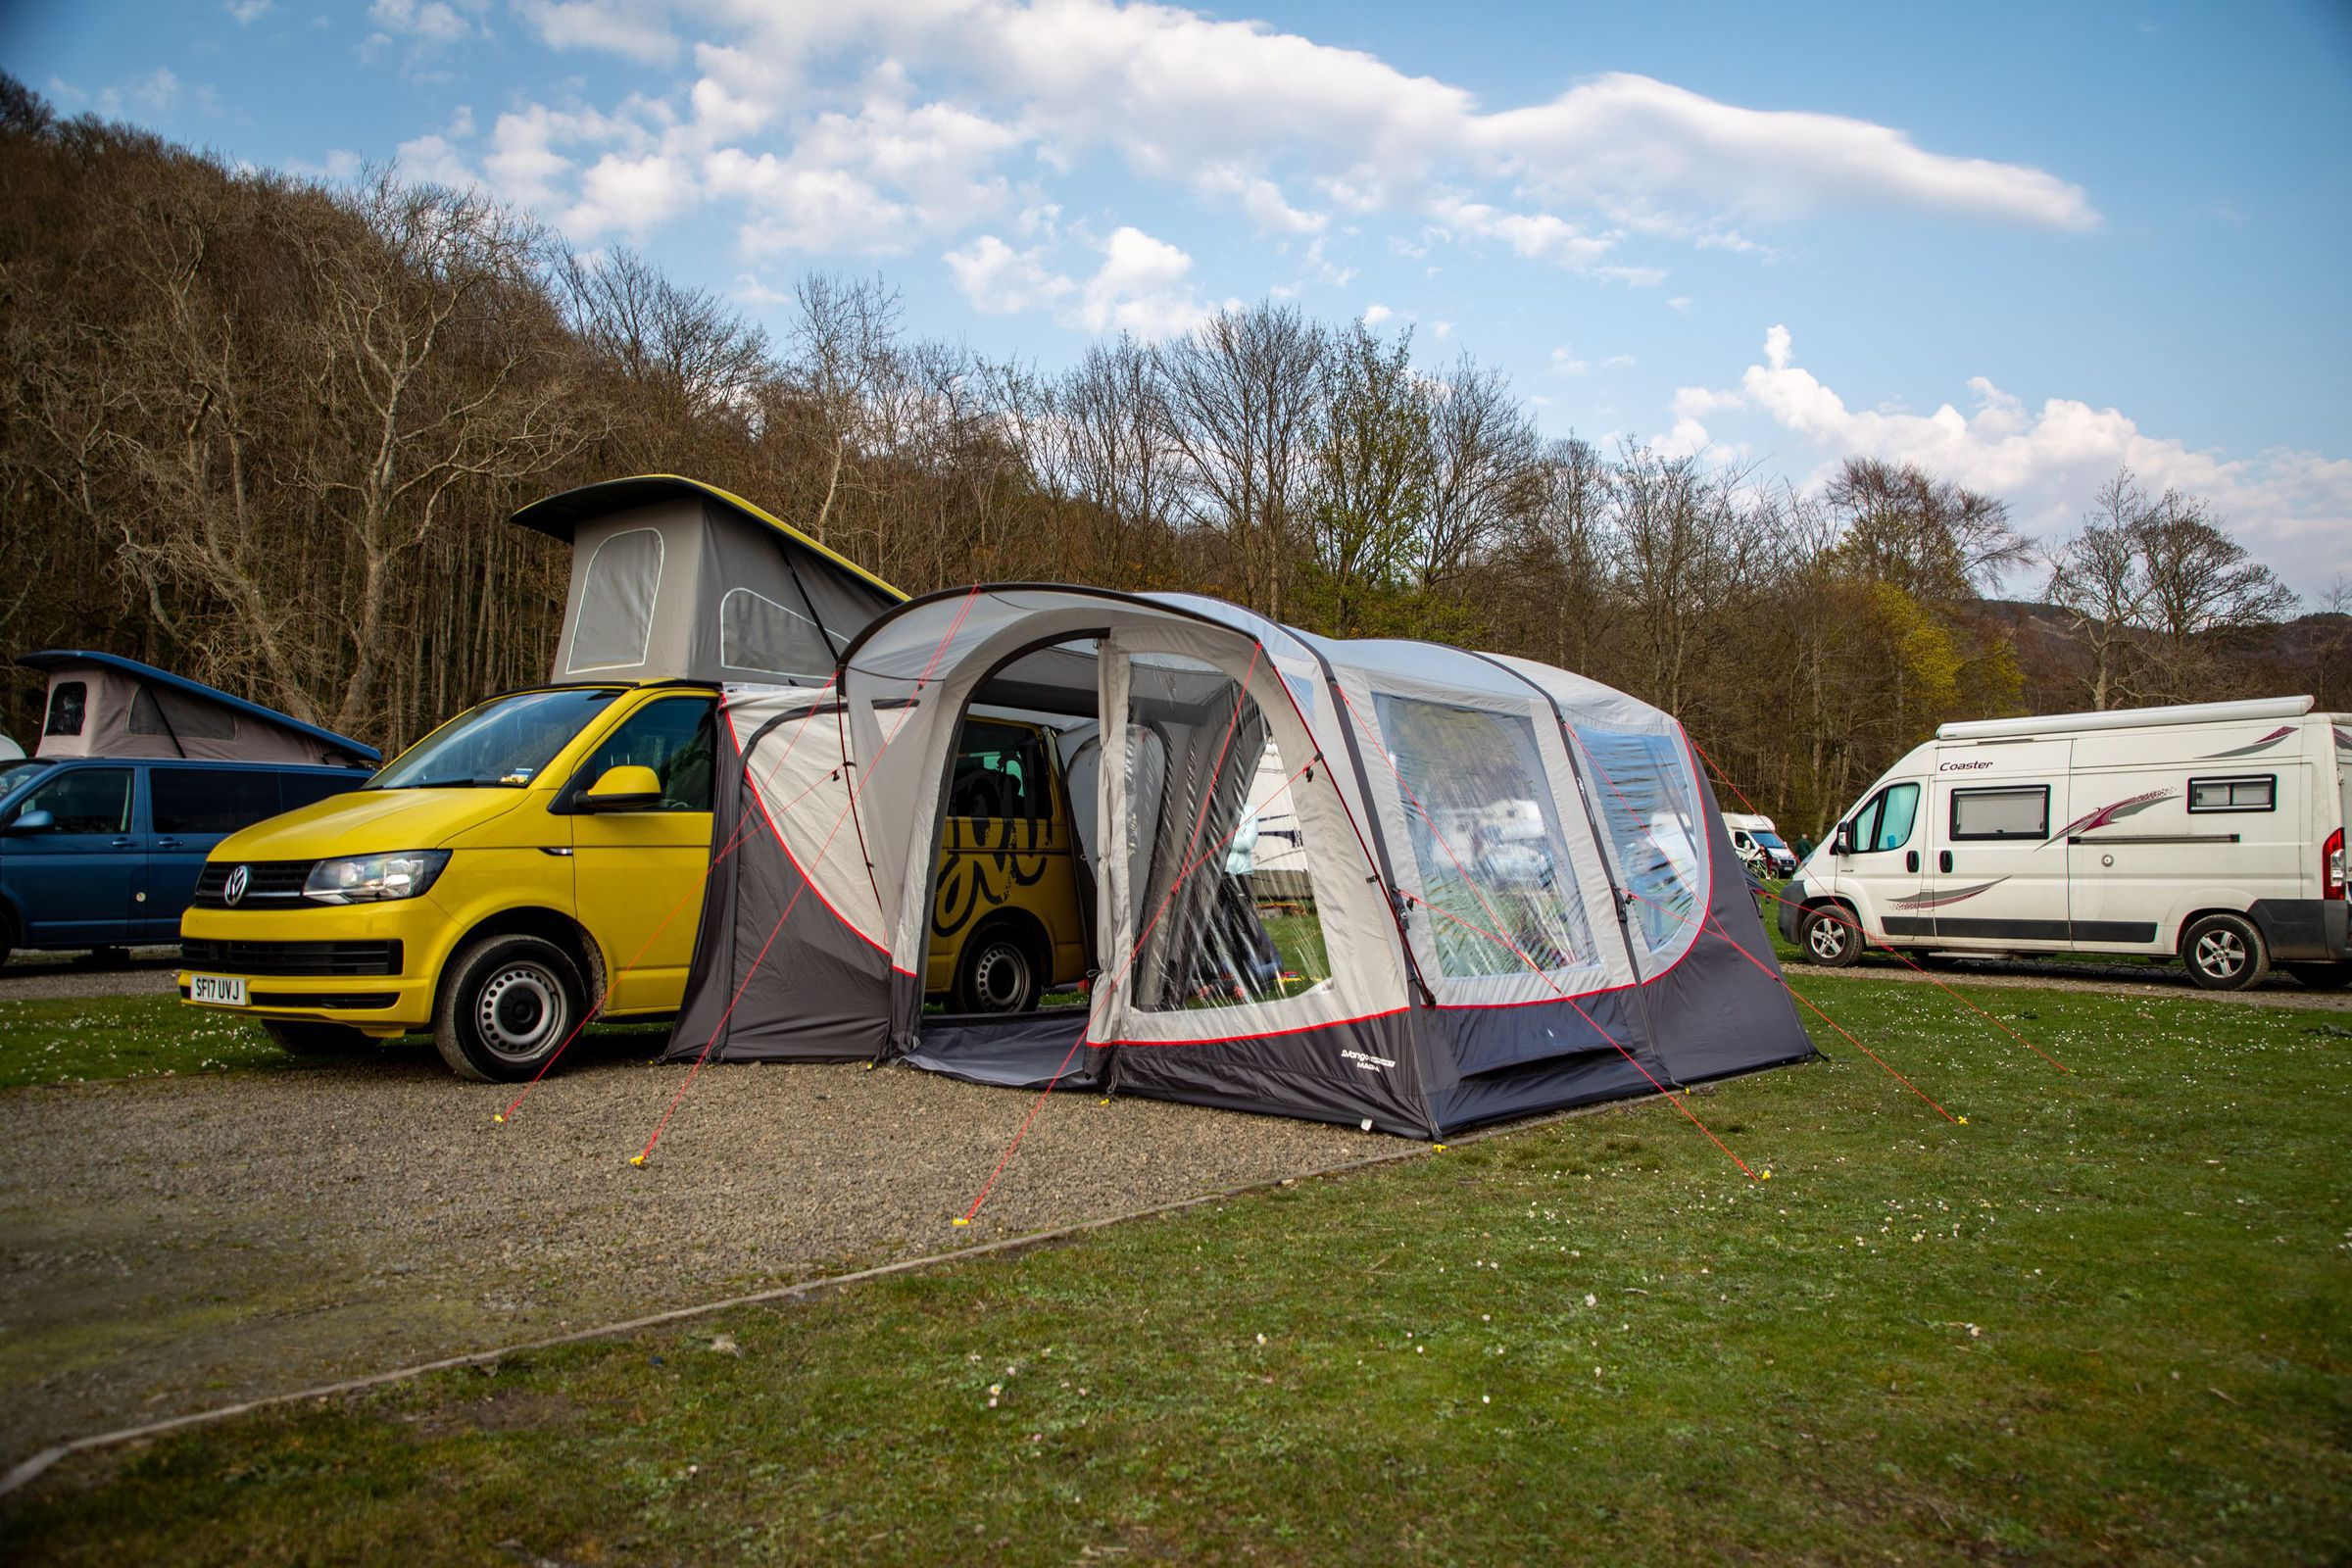 Vango Magra Vw Low Driveaway Awning Norwich Camping11